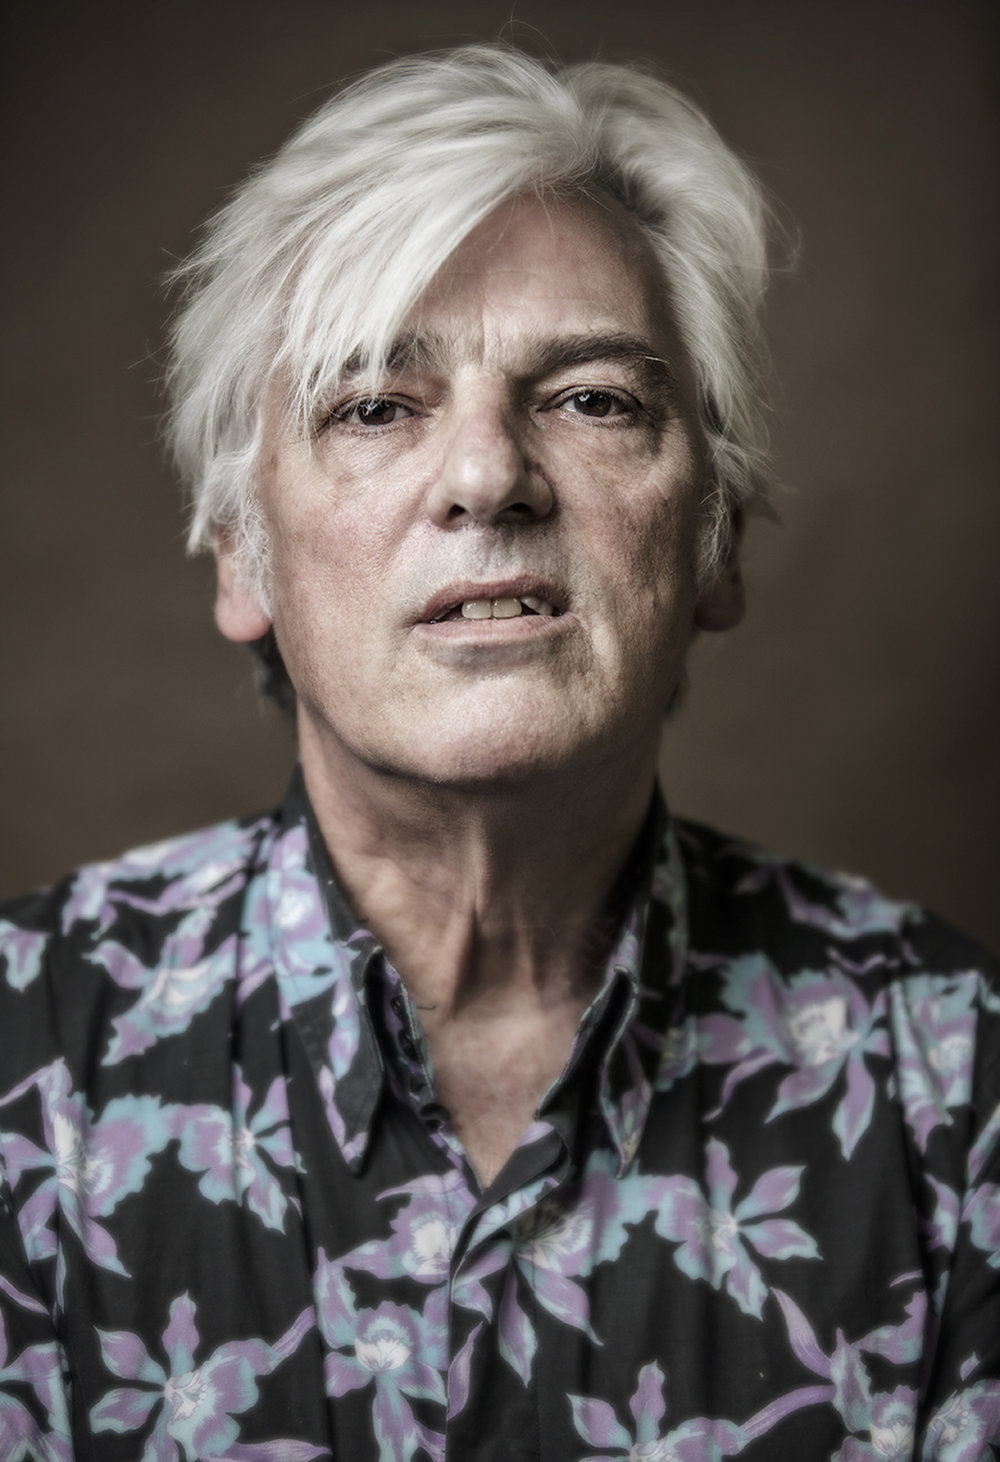 Musician Robyn Hitchcock